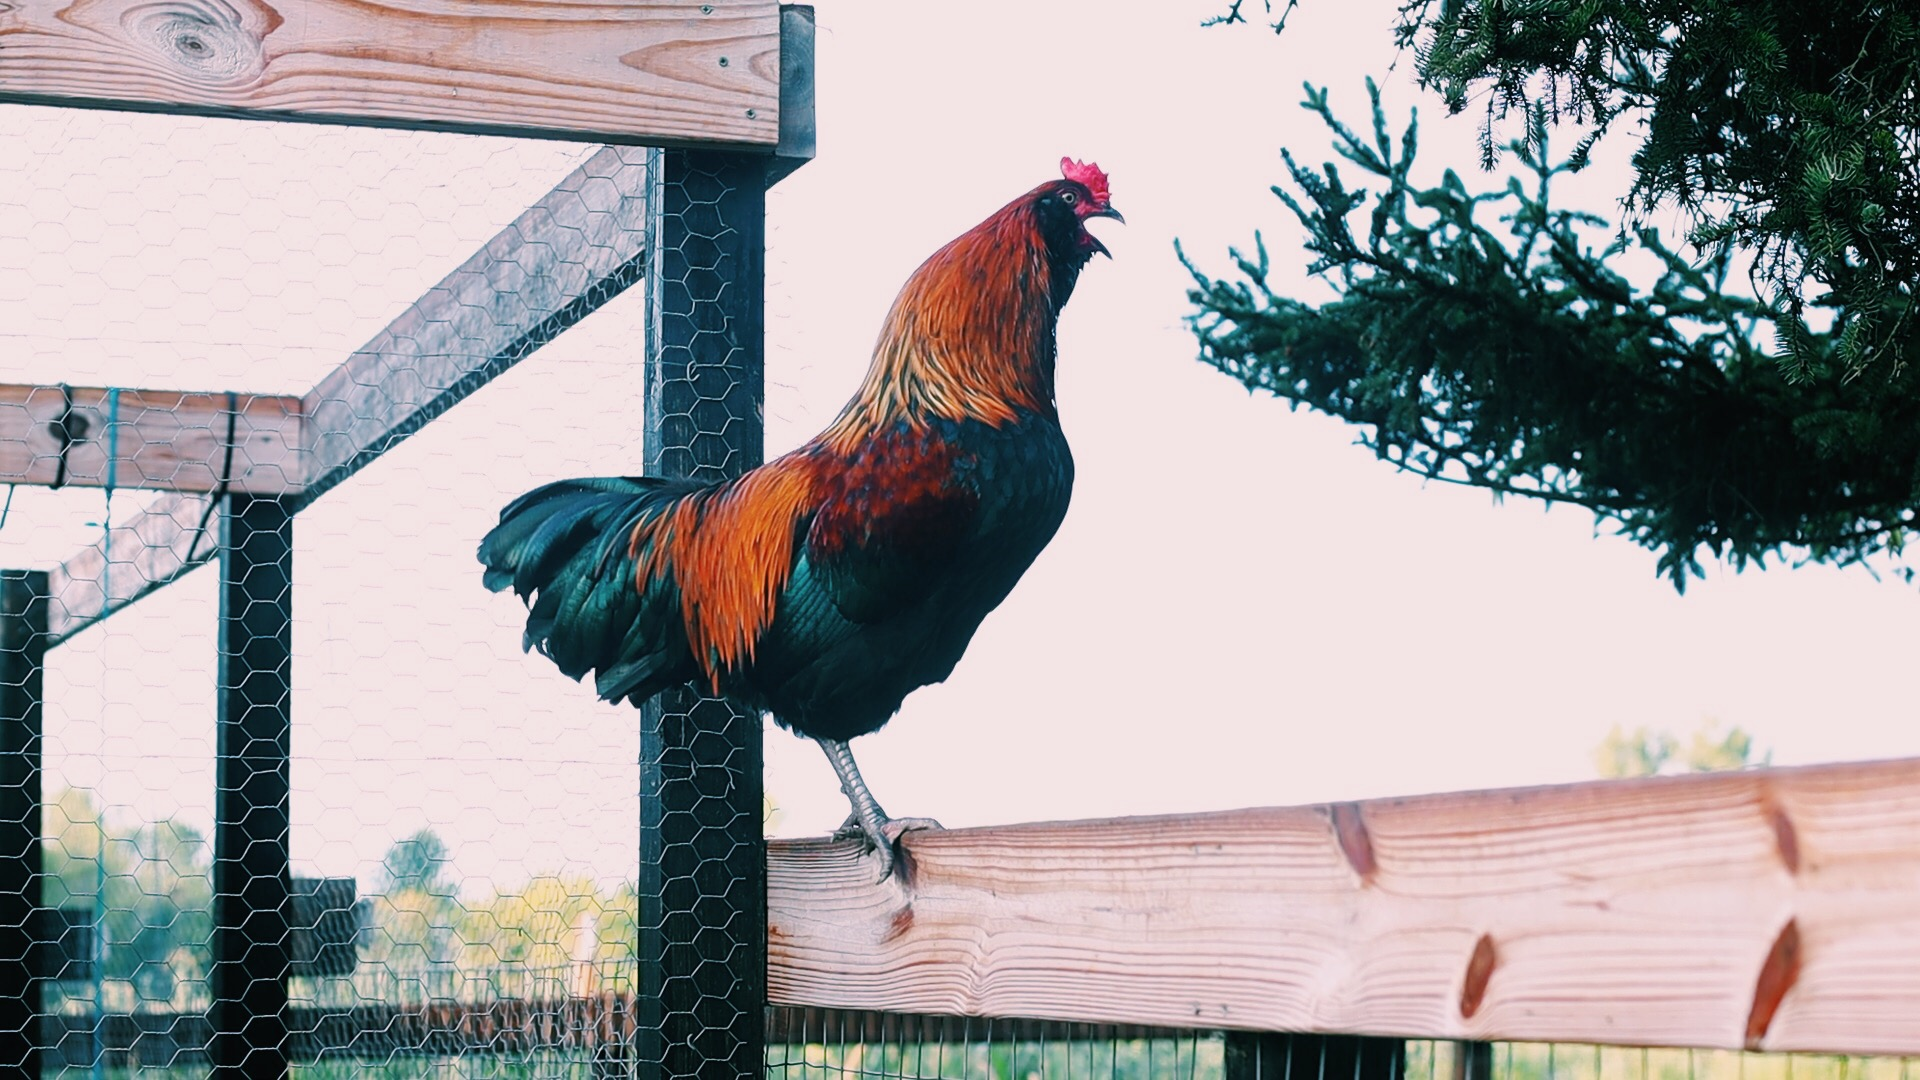 how to handle aggression in roosters